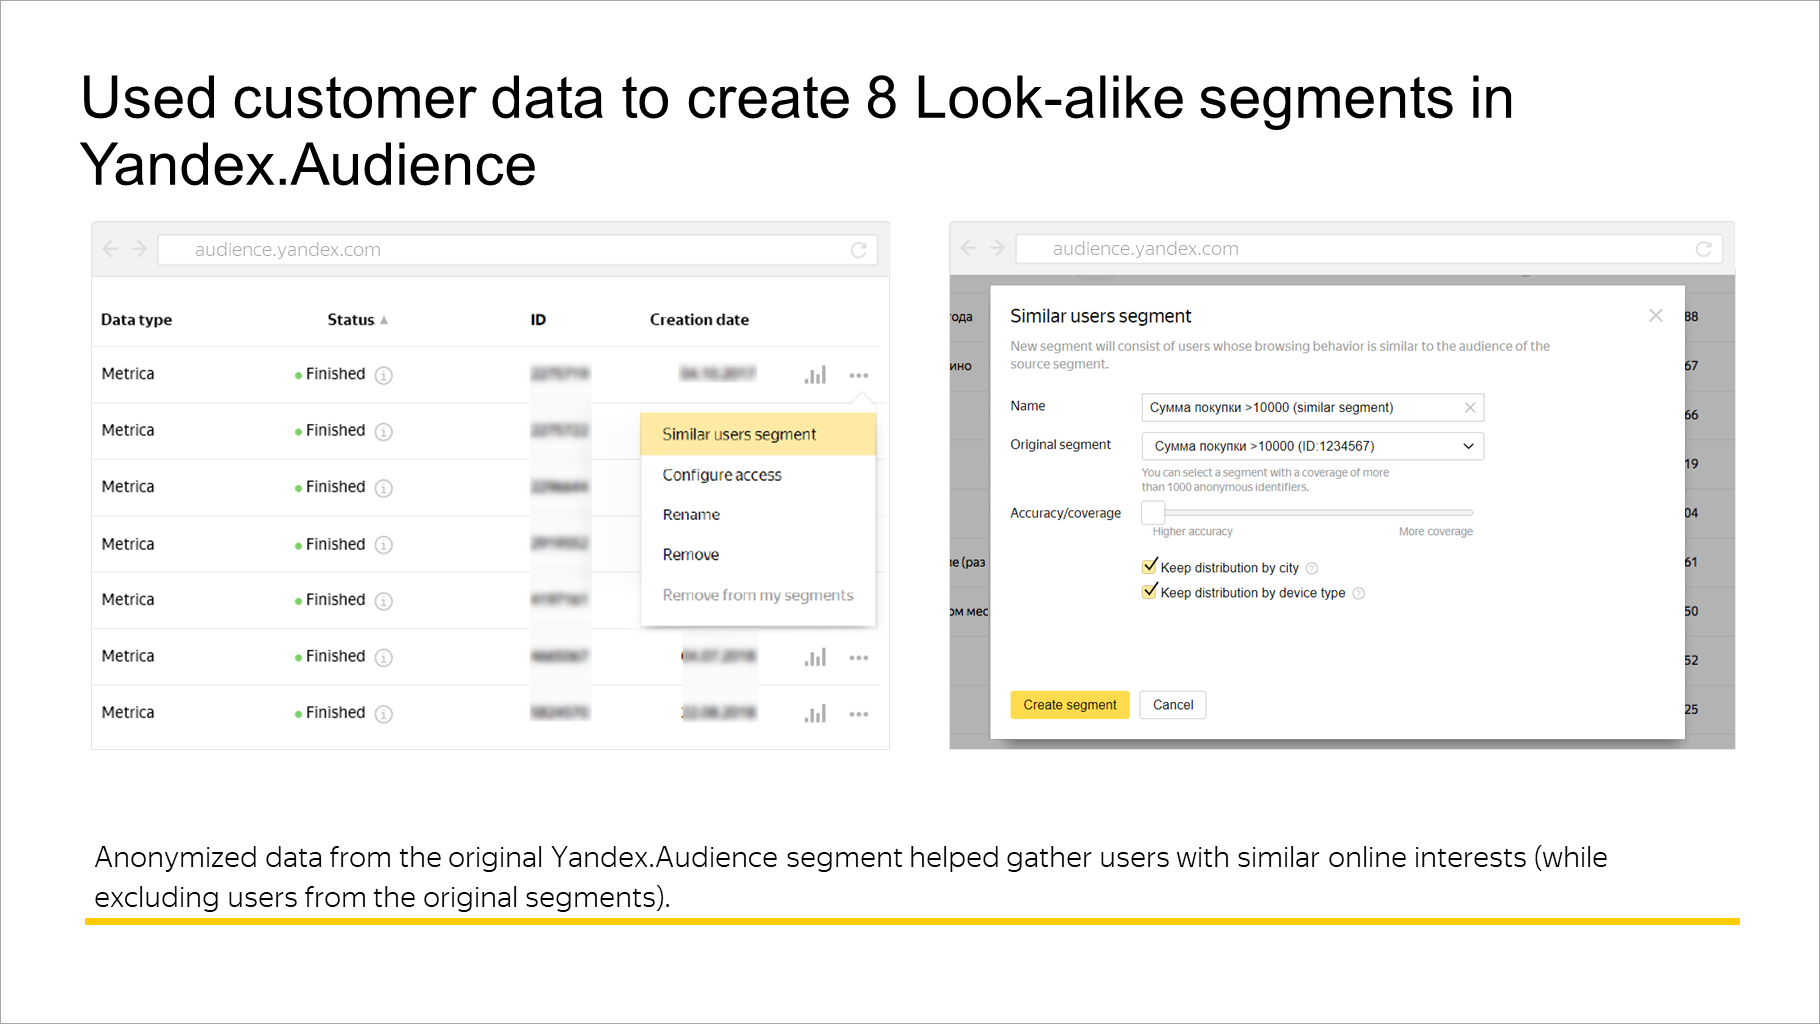 Used customer data to create 8 Look-alike segments in Yandex.Audience